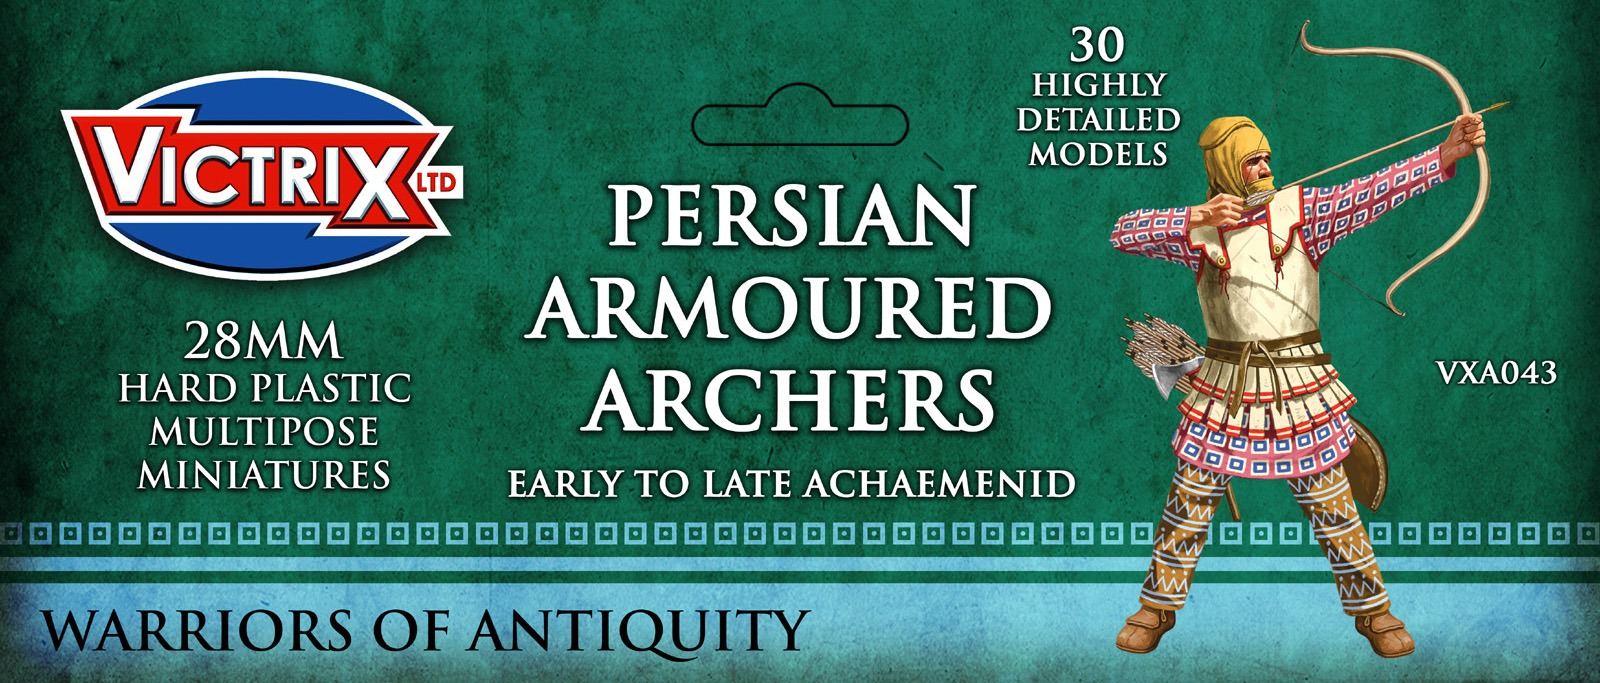 Persian Armoured Archers - Victrix